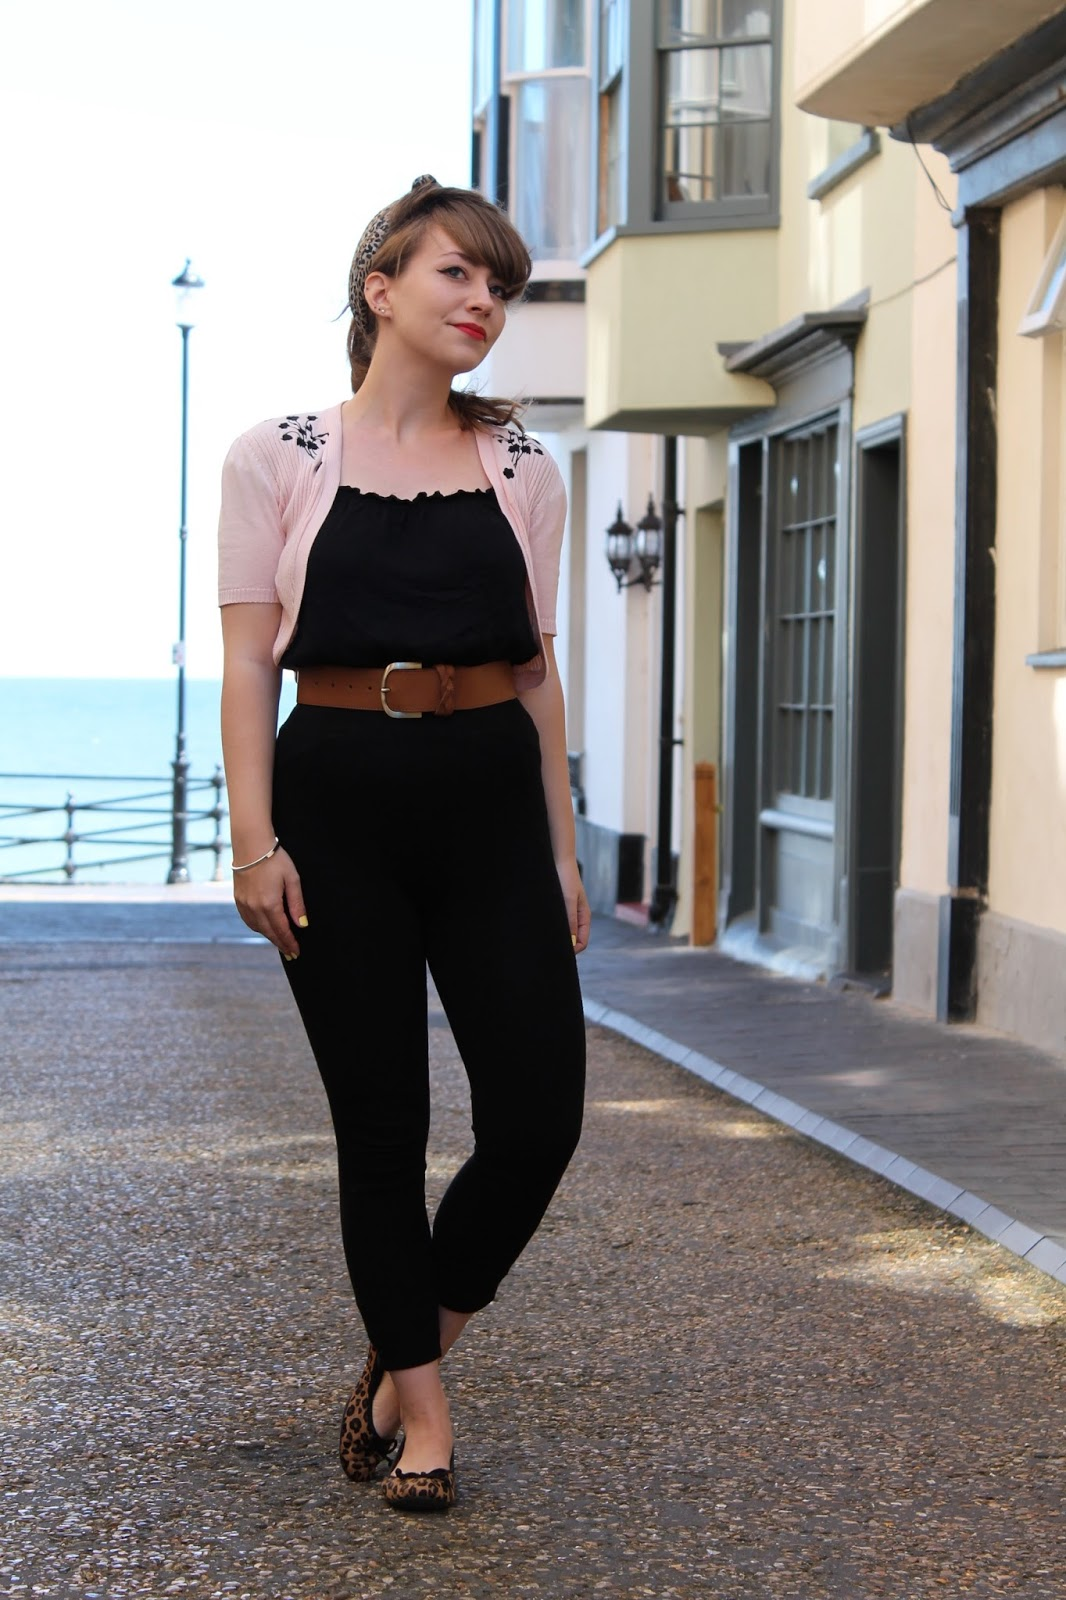 Grease style outfit